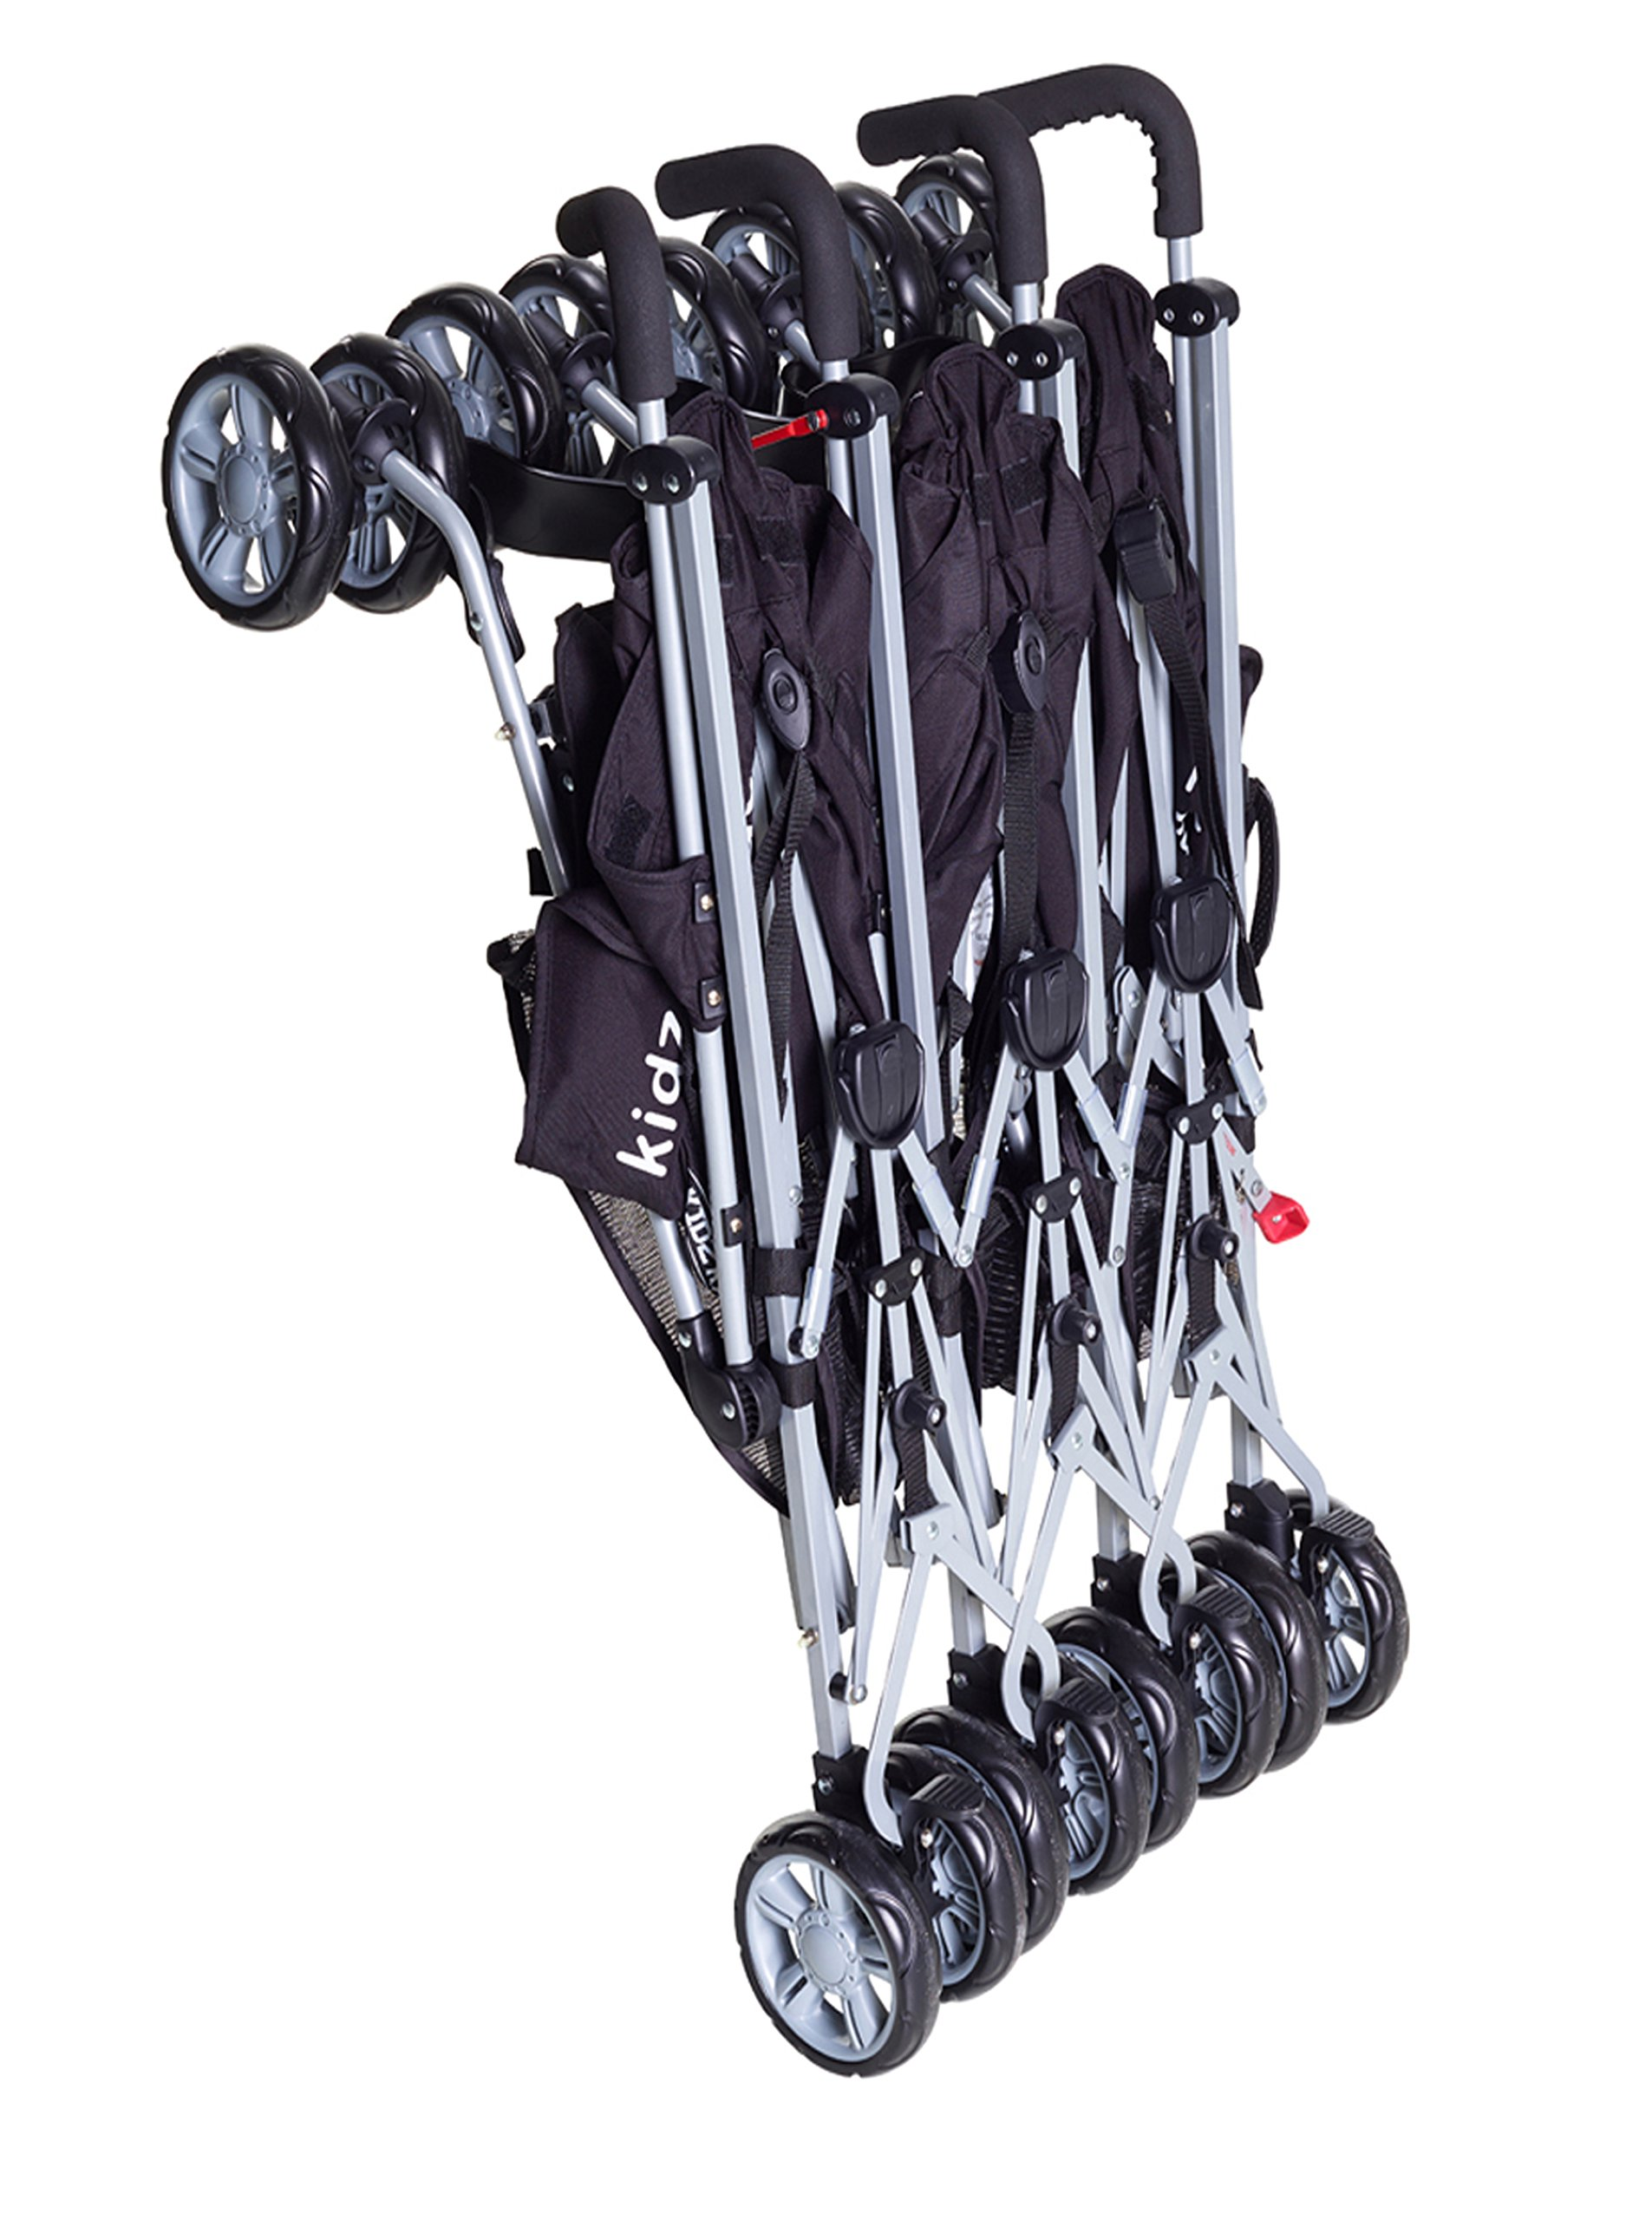 Kids Kargo Triple Pushchair with Raincover & Safety Strap Reflector Strips,Berry Red Kids Kargo  2